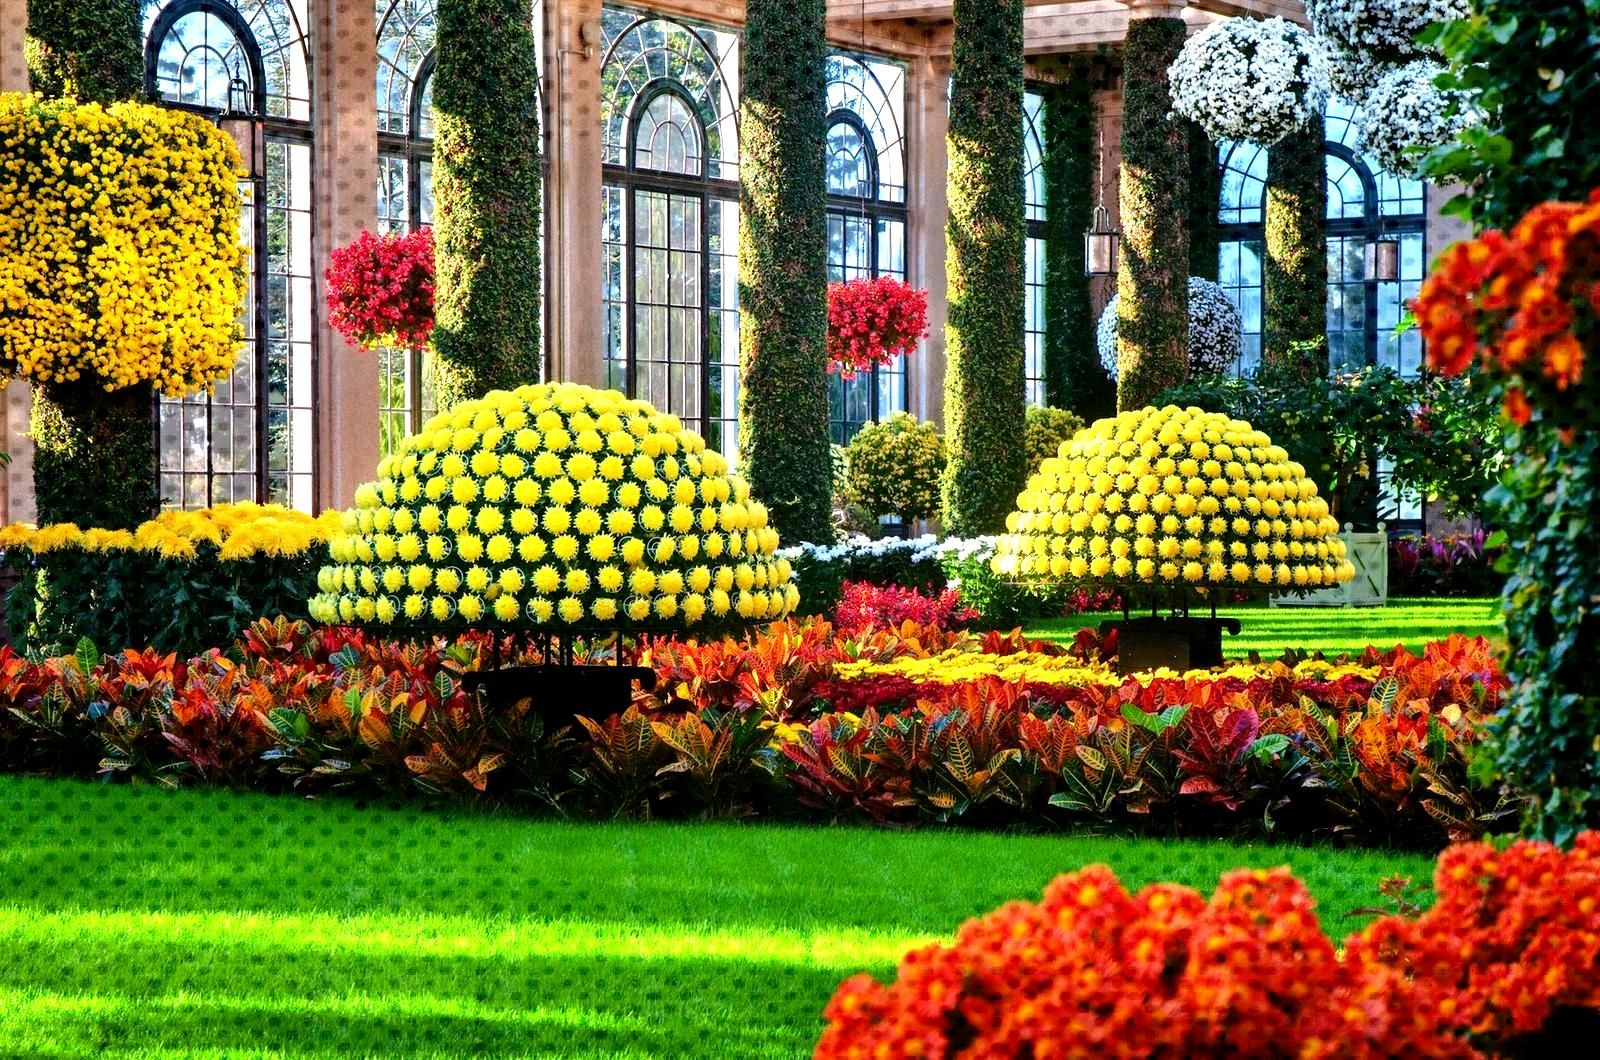 465d5391f030e46915c83148175c2007 - Is Longwood Gardens Open On Easter